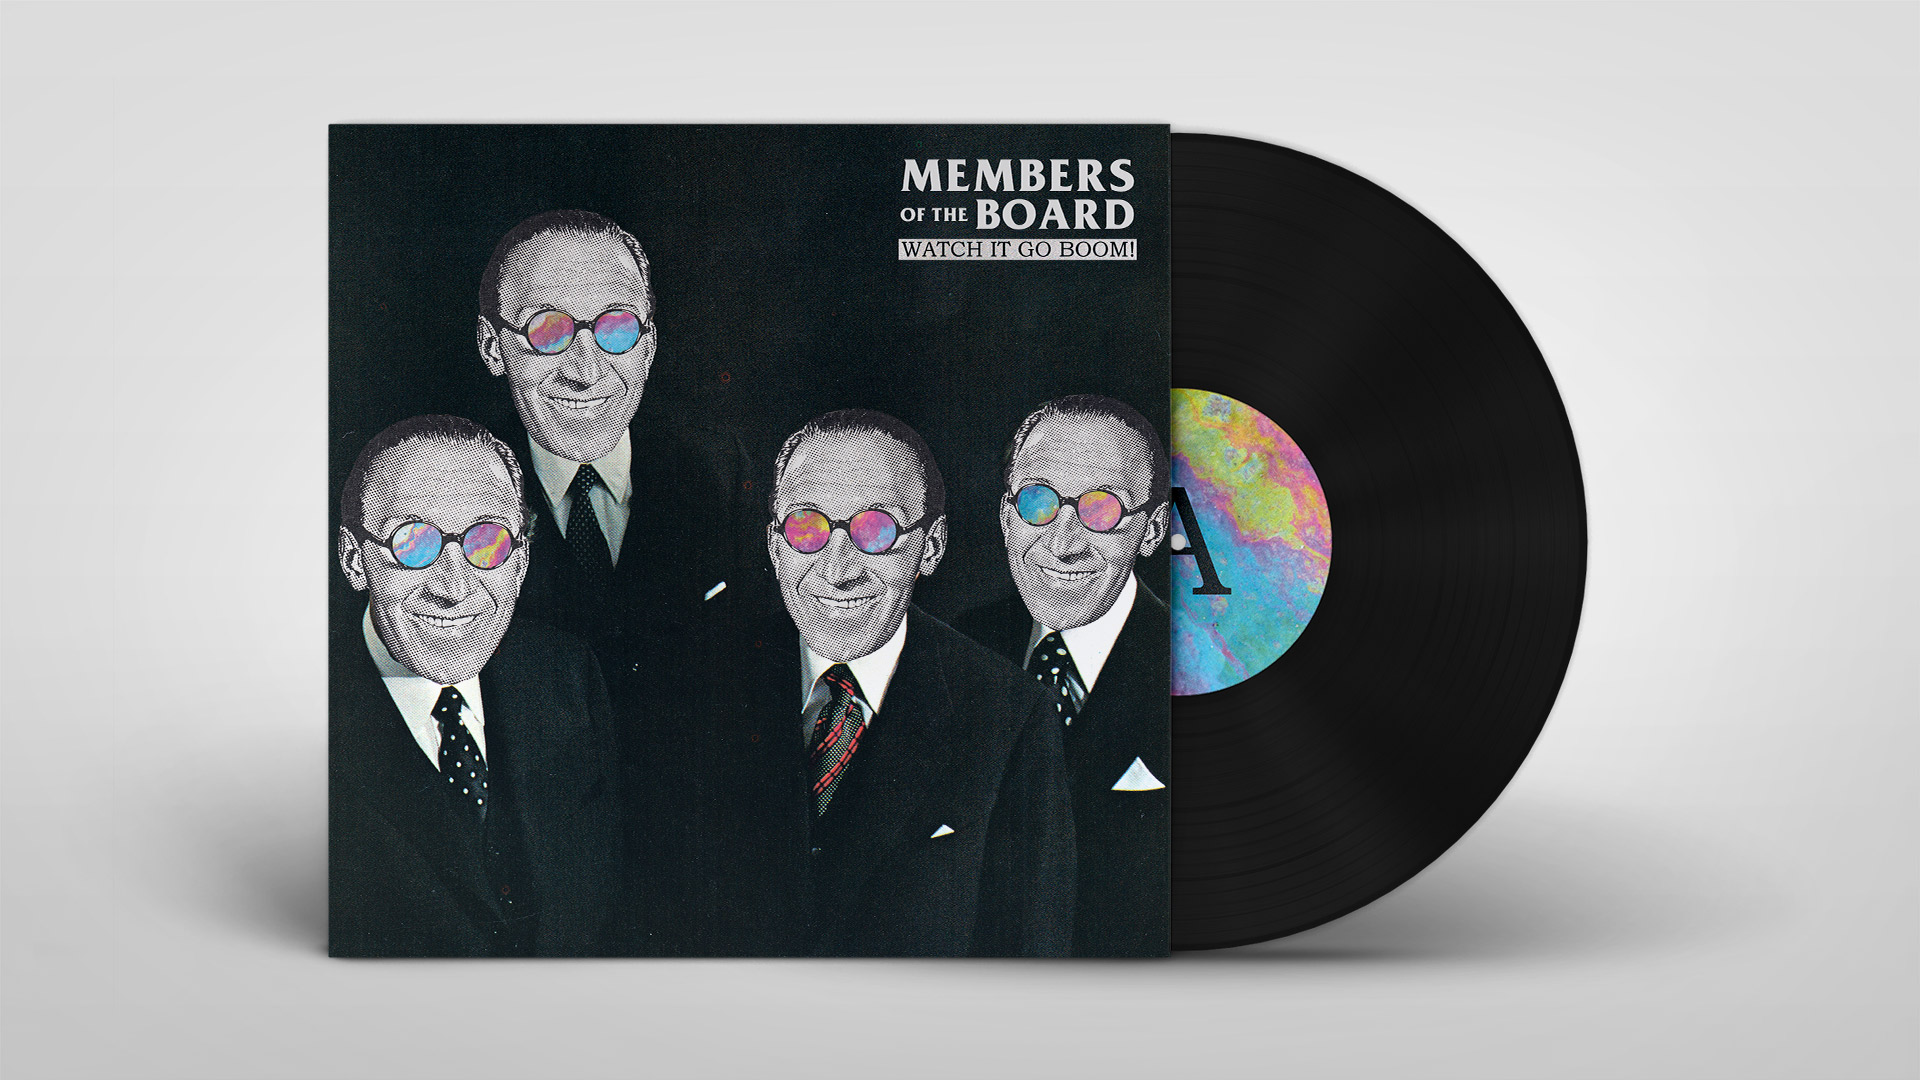 LP cover artwork for Members of the Board